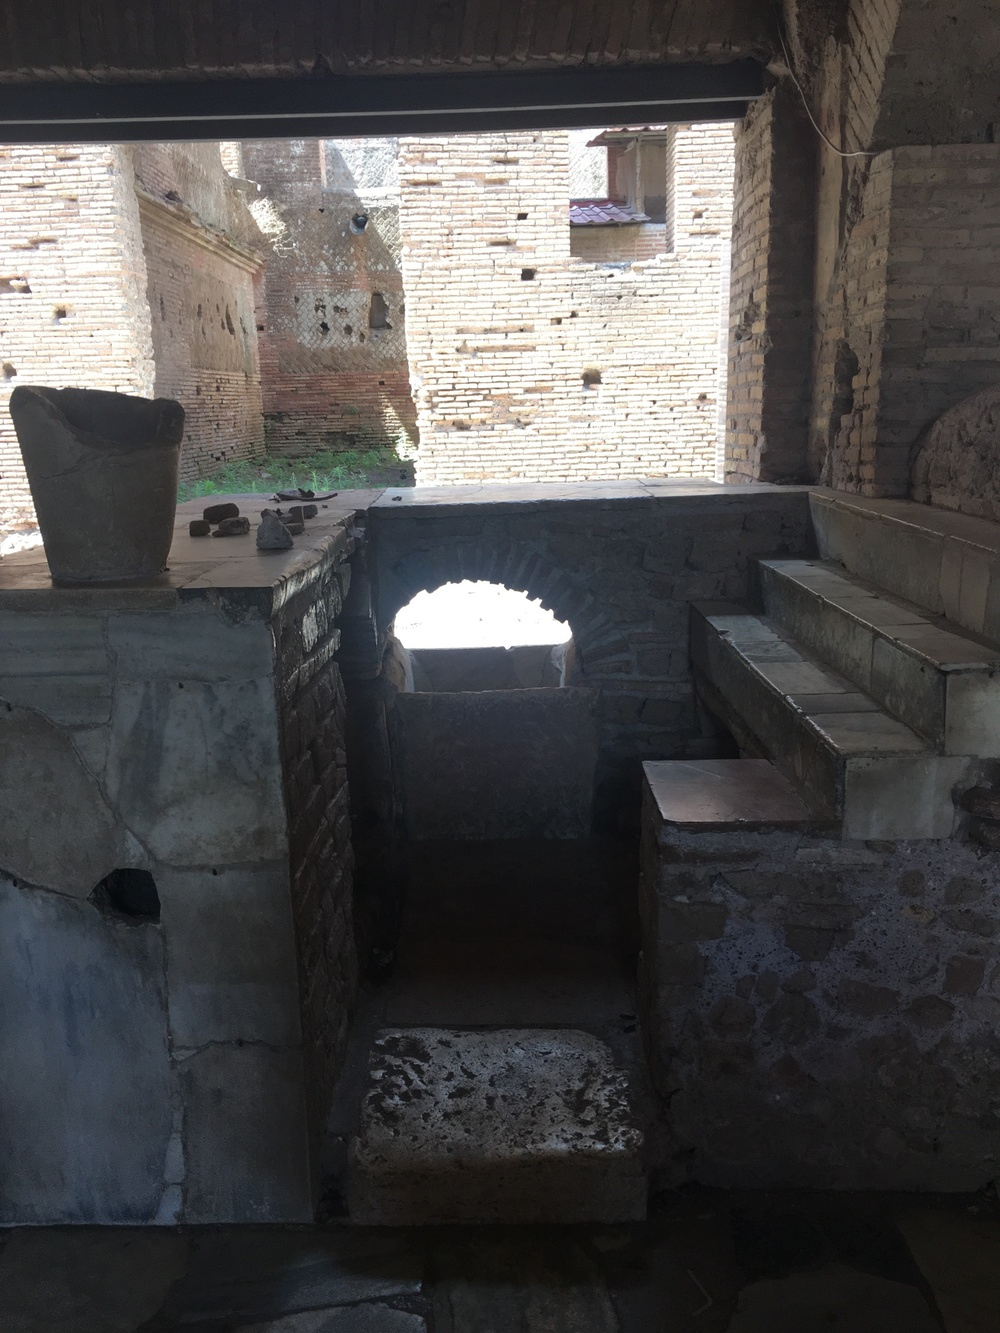 Here's the side shot of the bar, you can see the sink (!!!) and shelves where they displayed their wares. Again. This is from the FIRST CENTURY.